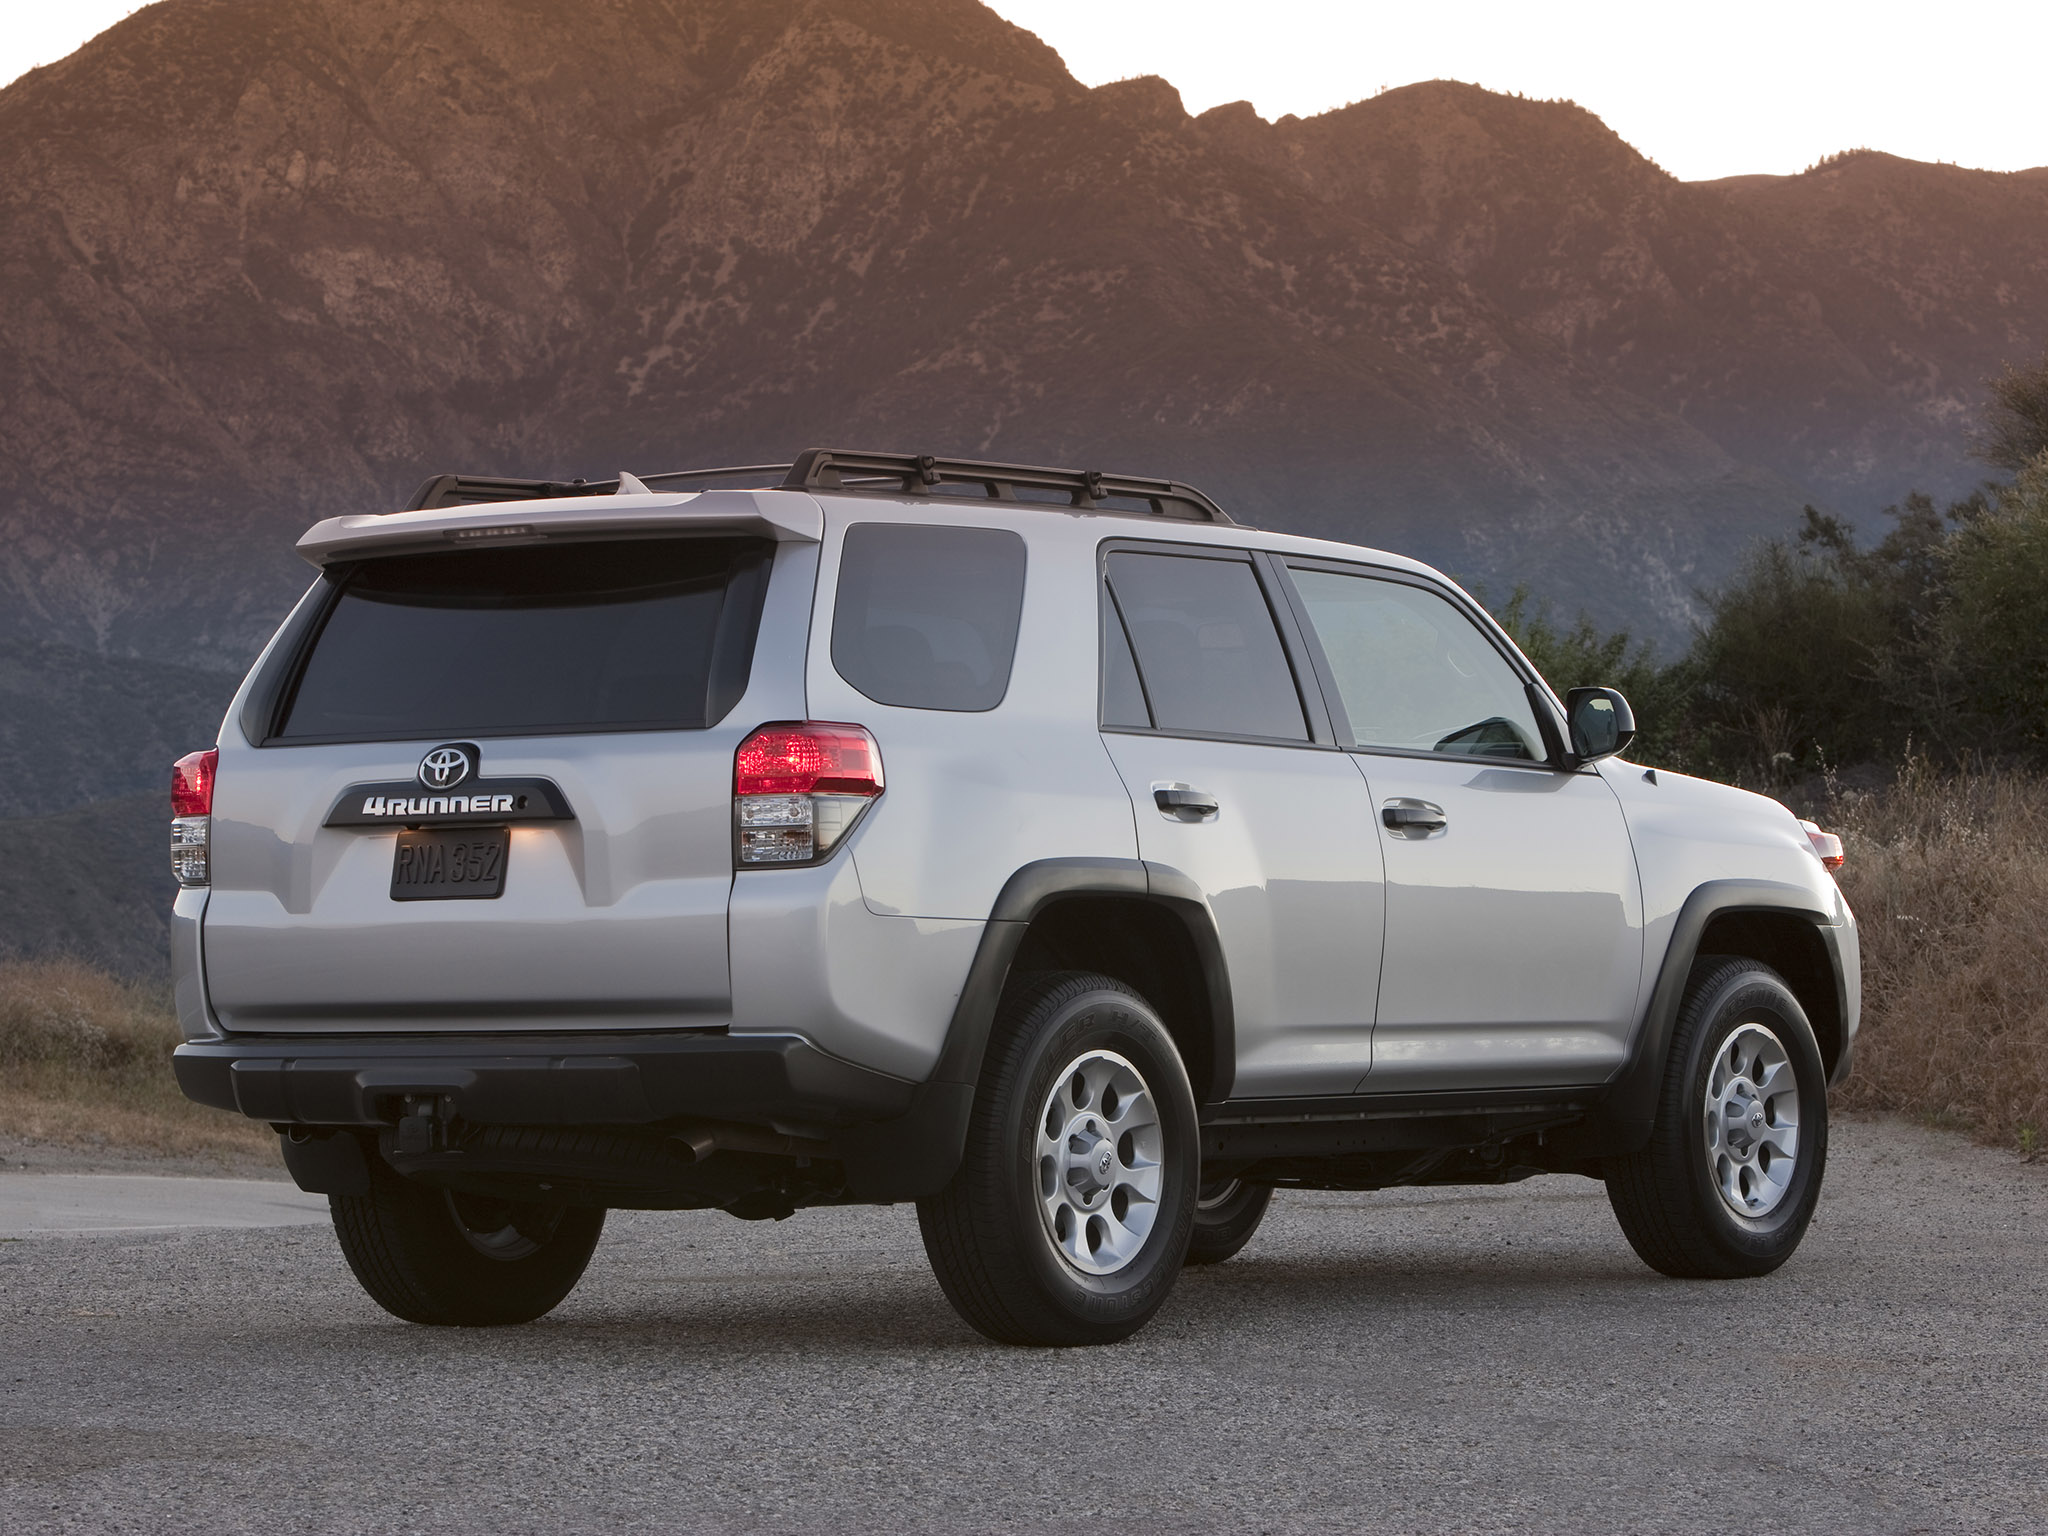 toyota 4runner trail 2010 toyota 4runner trail 2010 photo 11 car in pictures car photo gallery. Black Bedroom Furniture Sets. Home Design Ideas